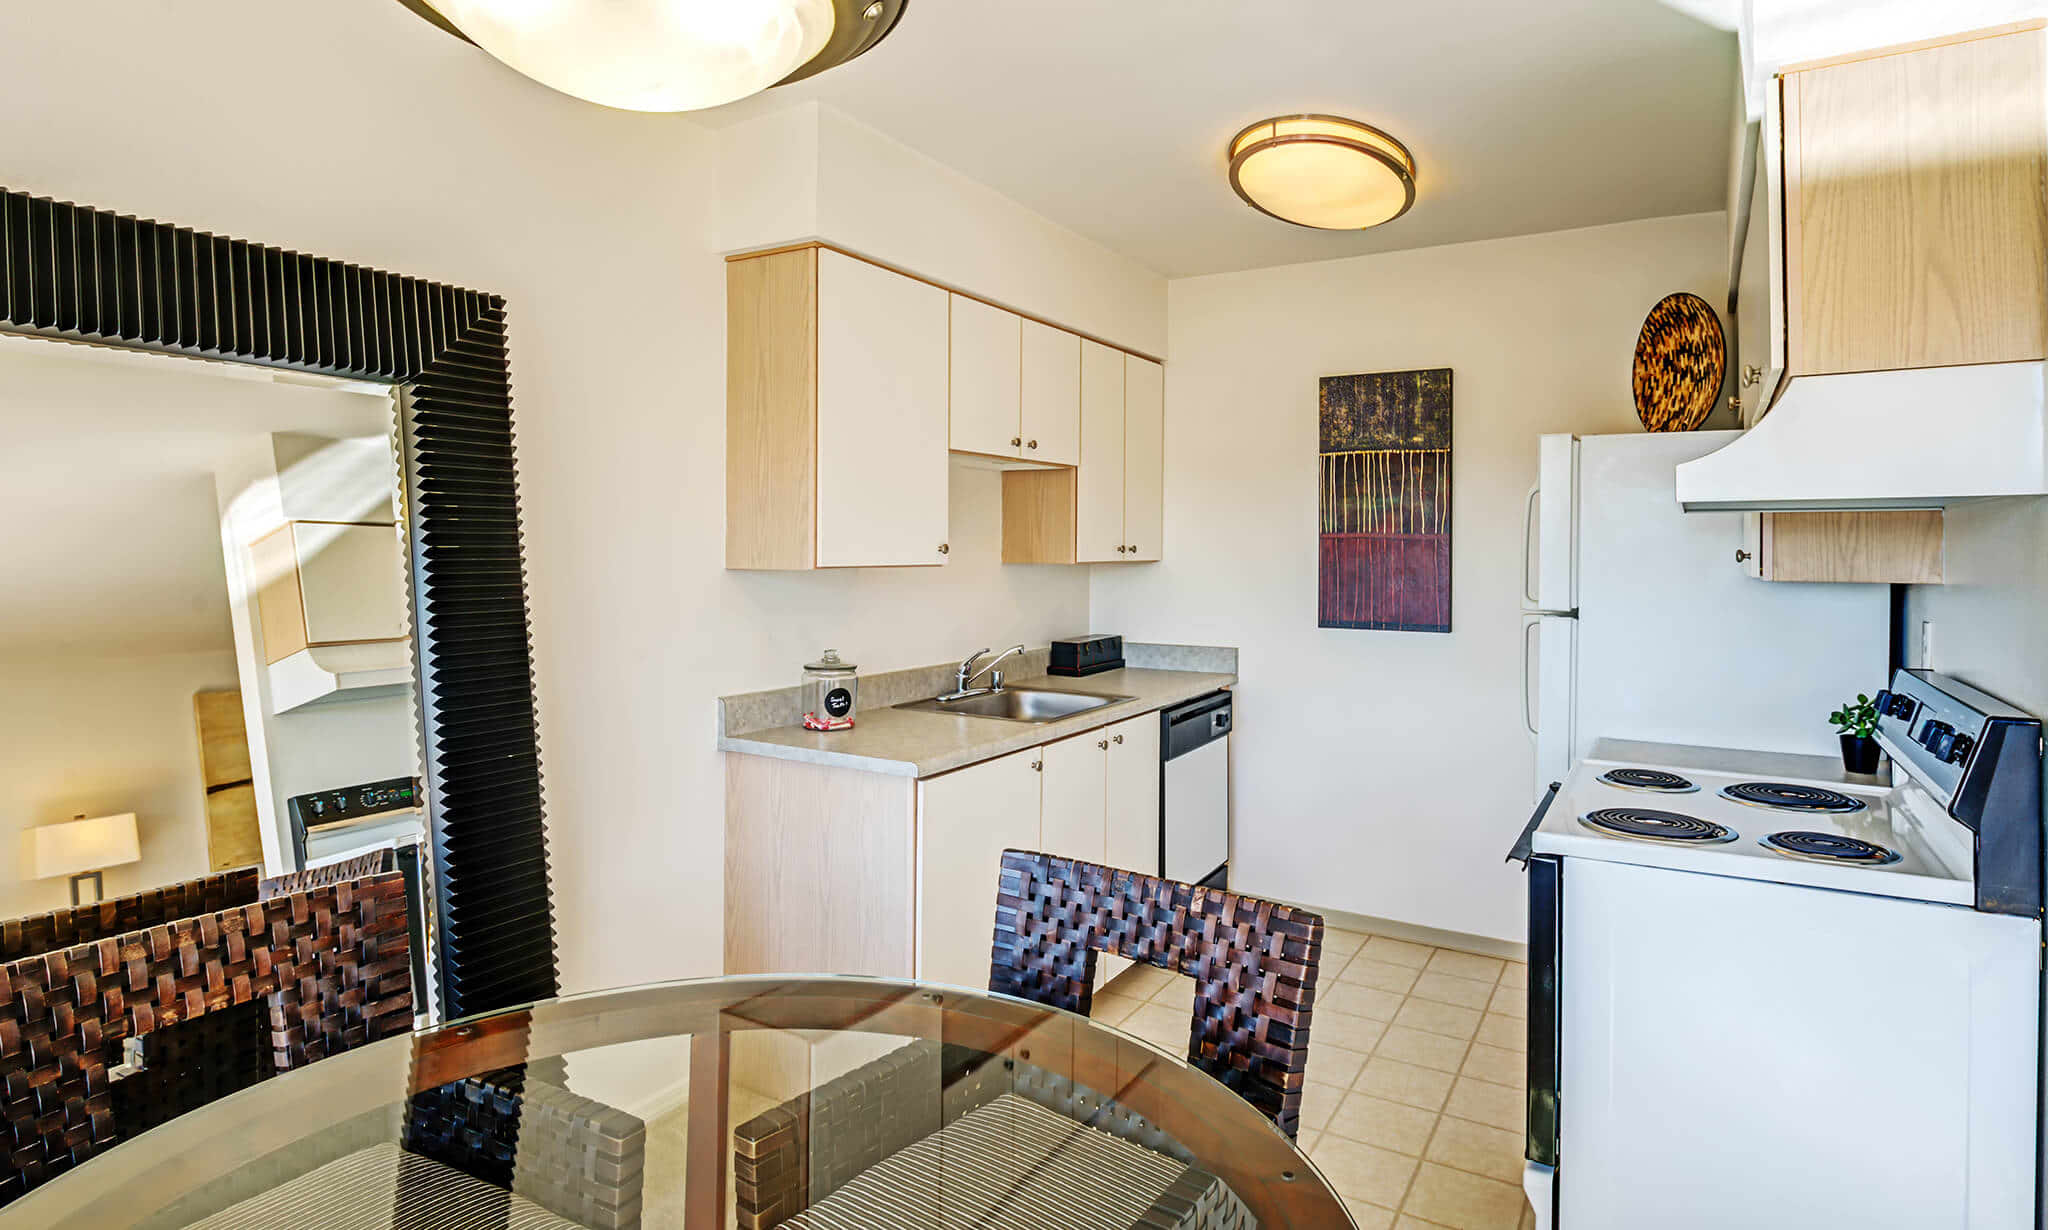 Cliffside Apartments apartments in Gig Harbor WA to rent photo 5